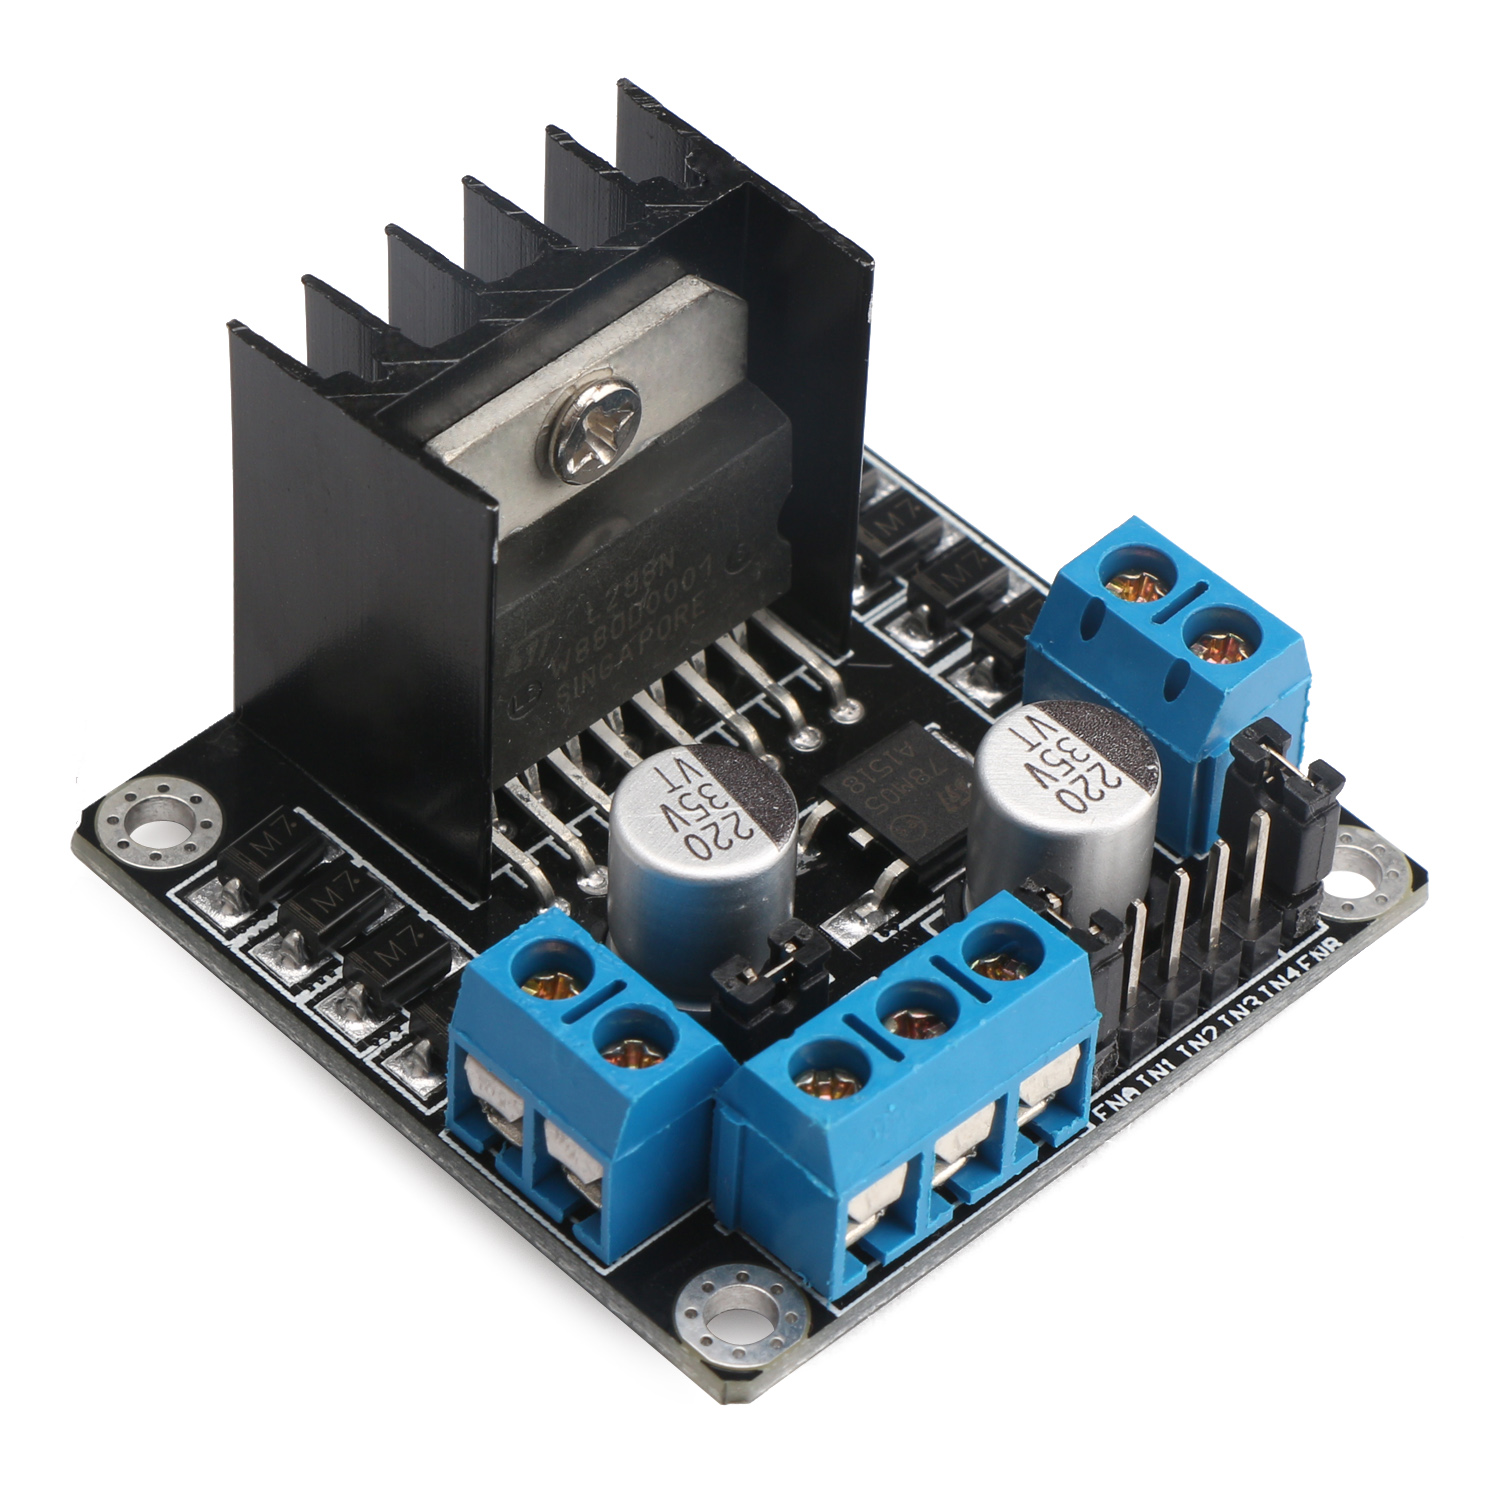 L298n Dual H Bridge Motor Driver Module Dc 5v35v 2a 25w Power Diagram Together With L298 Circuit Pin On Supply